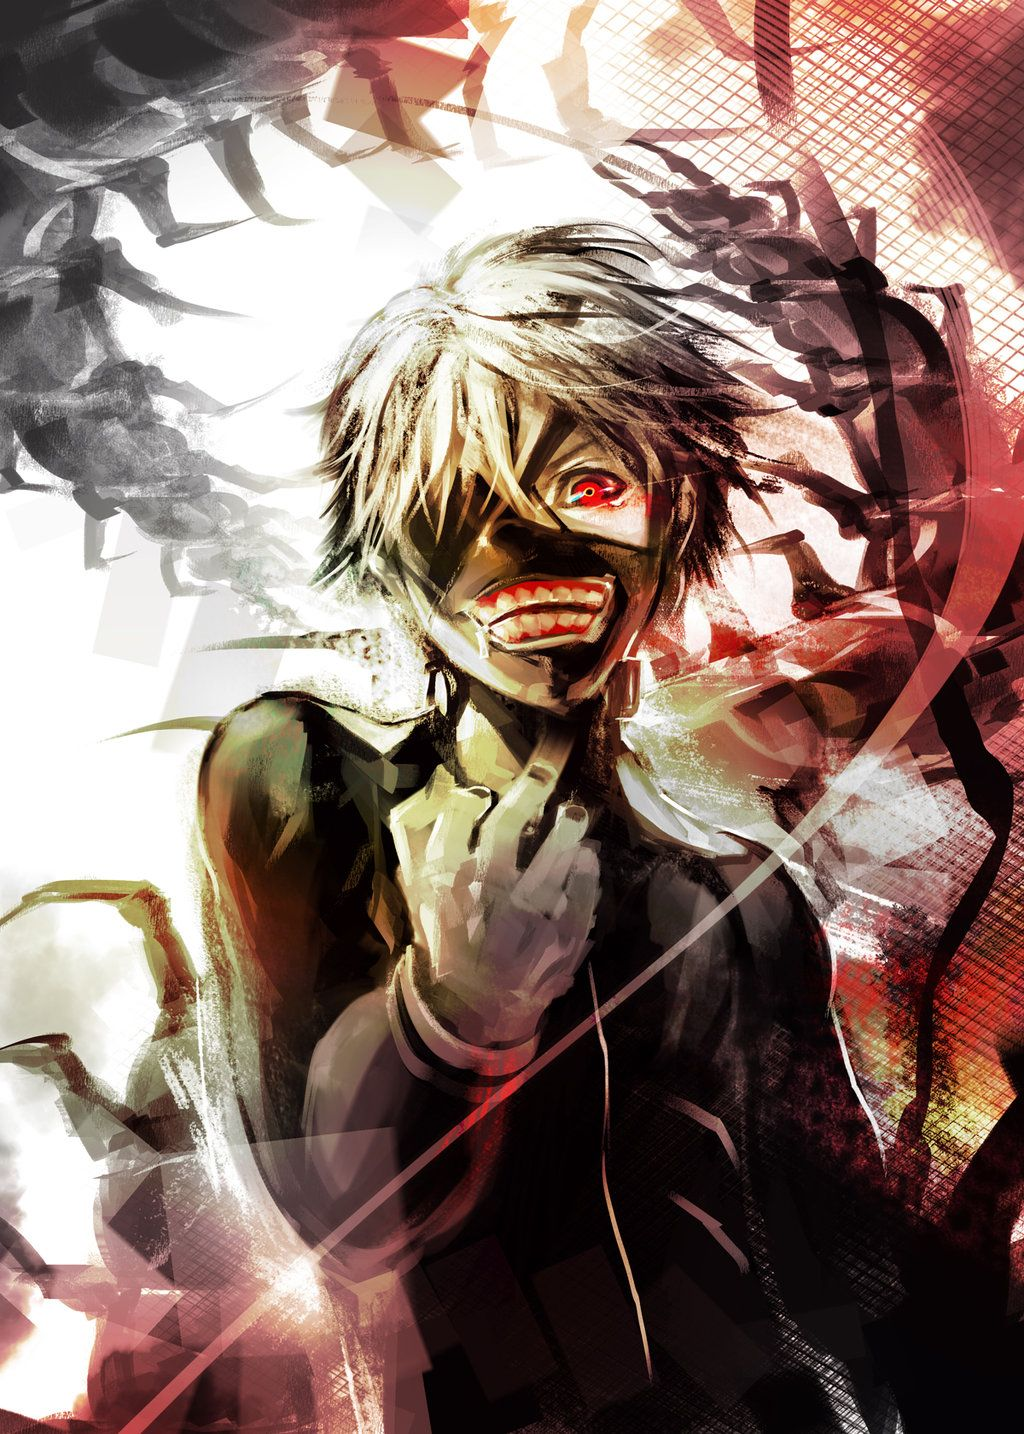 Tokyo Ghoul Wallpaper 1920 X 1080 Hd By Say0chi On Deviantart